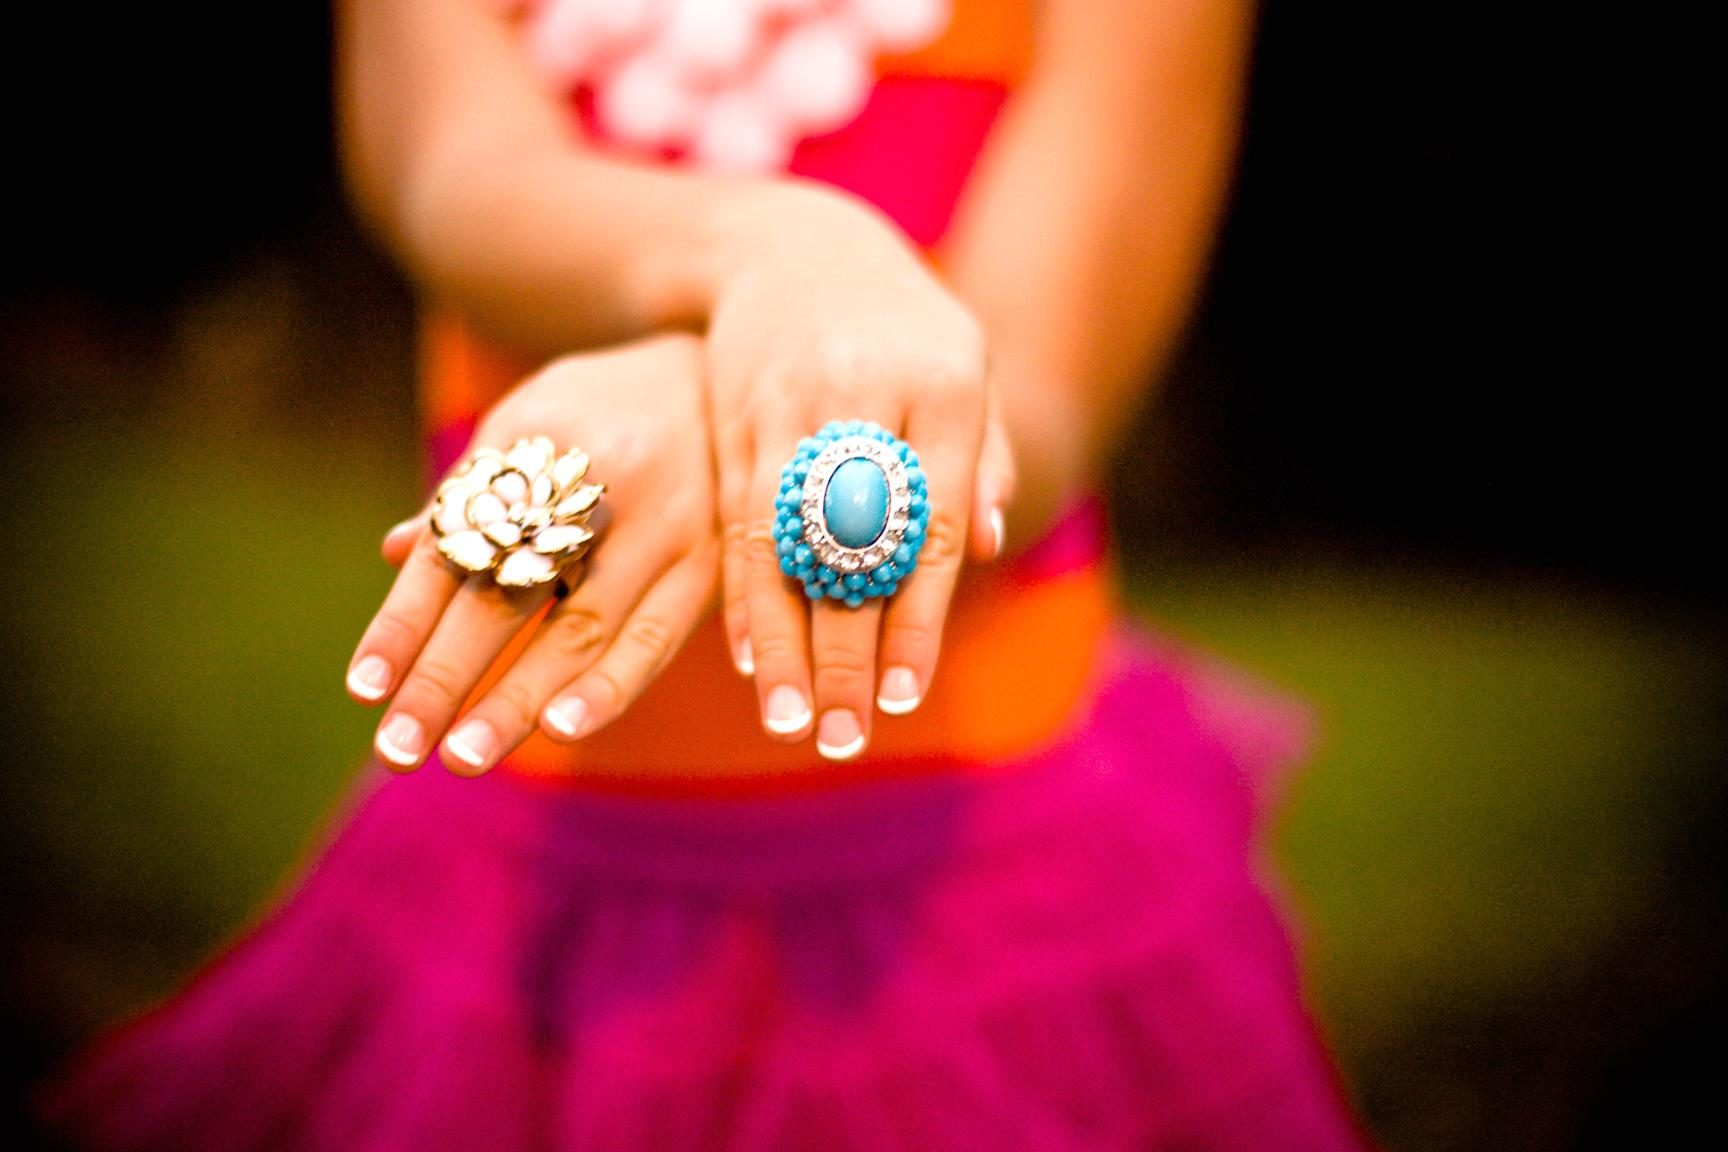 Free picture: woman, hand, finger, girl, jewelry, fashion ...